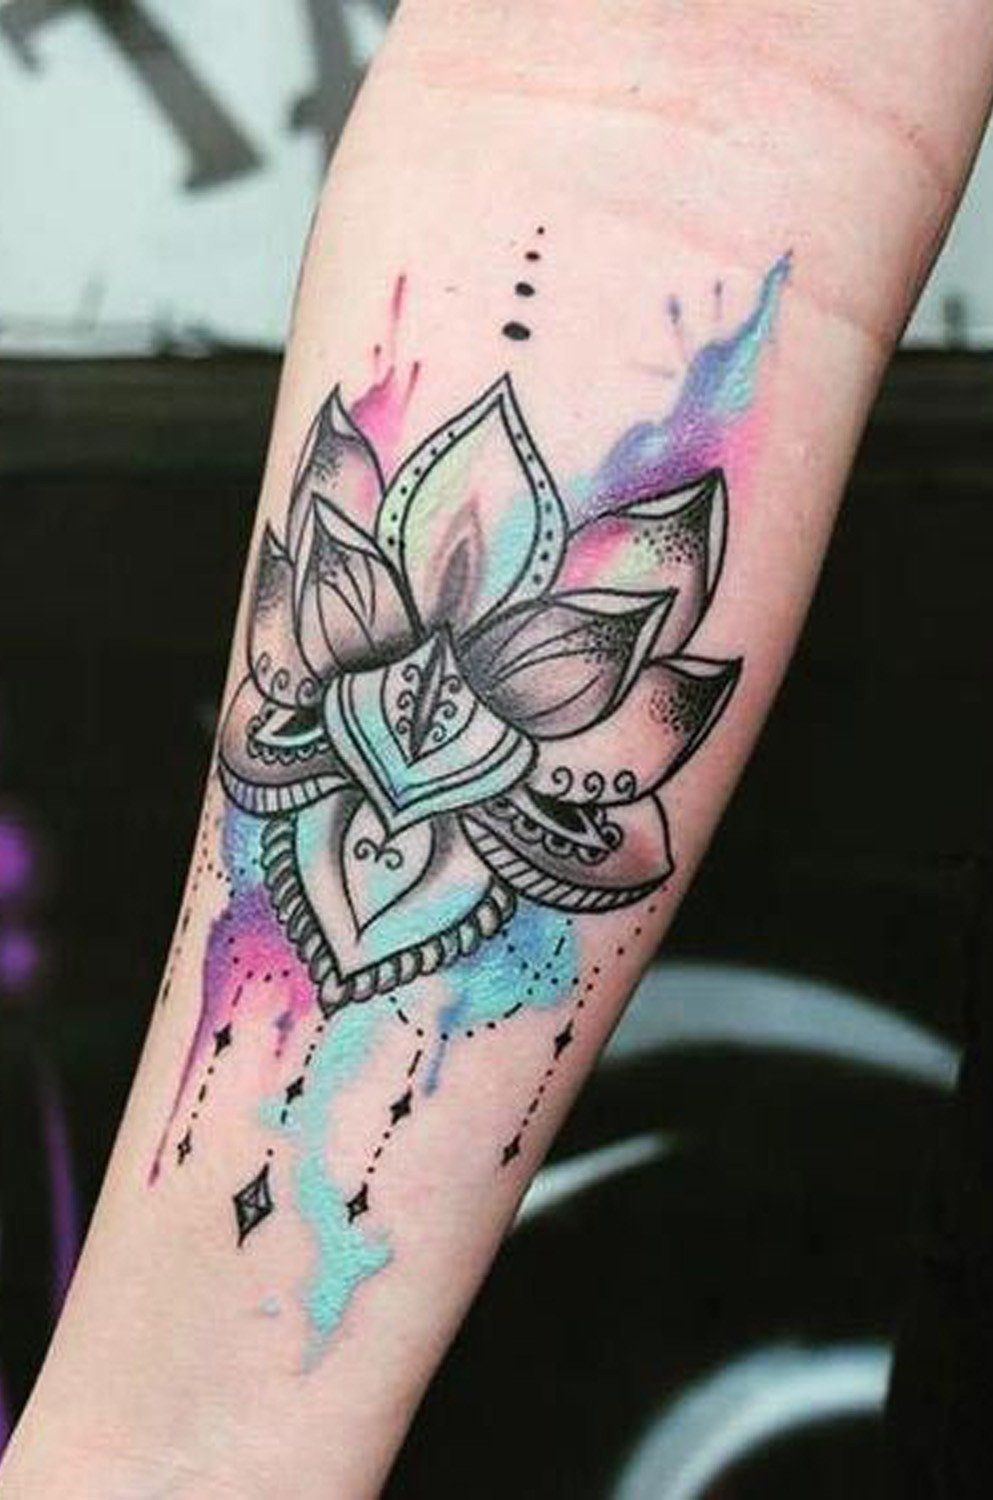 Watercolor Lotus Flower Wrist Tattoo Ideas for Women at